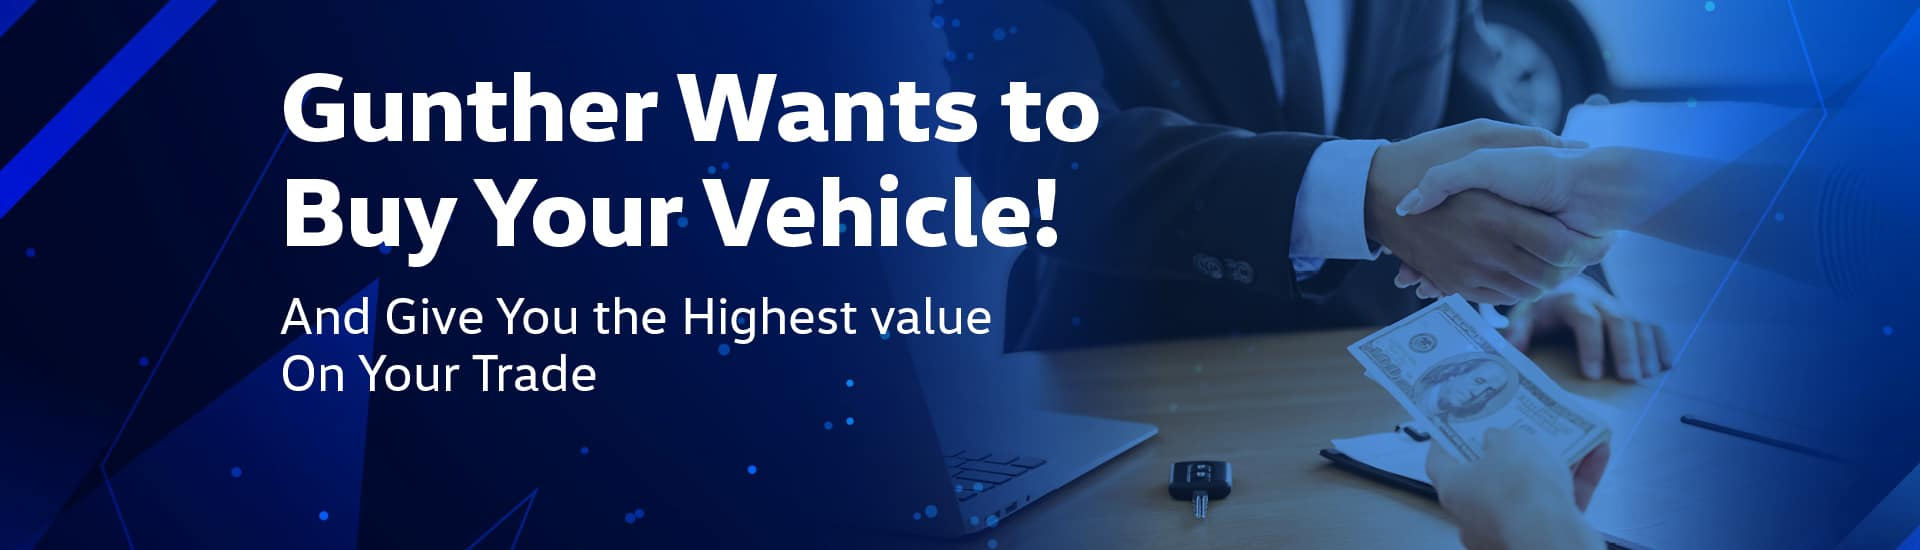 Gunther wants to buy your vehicle and give you the highest value on your trade.